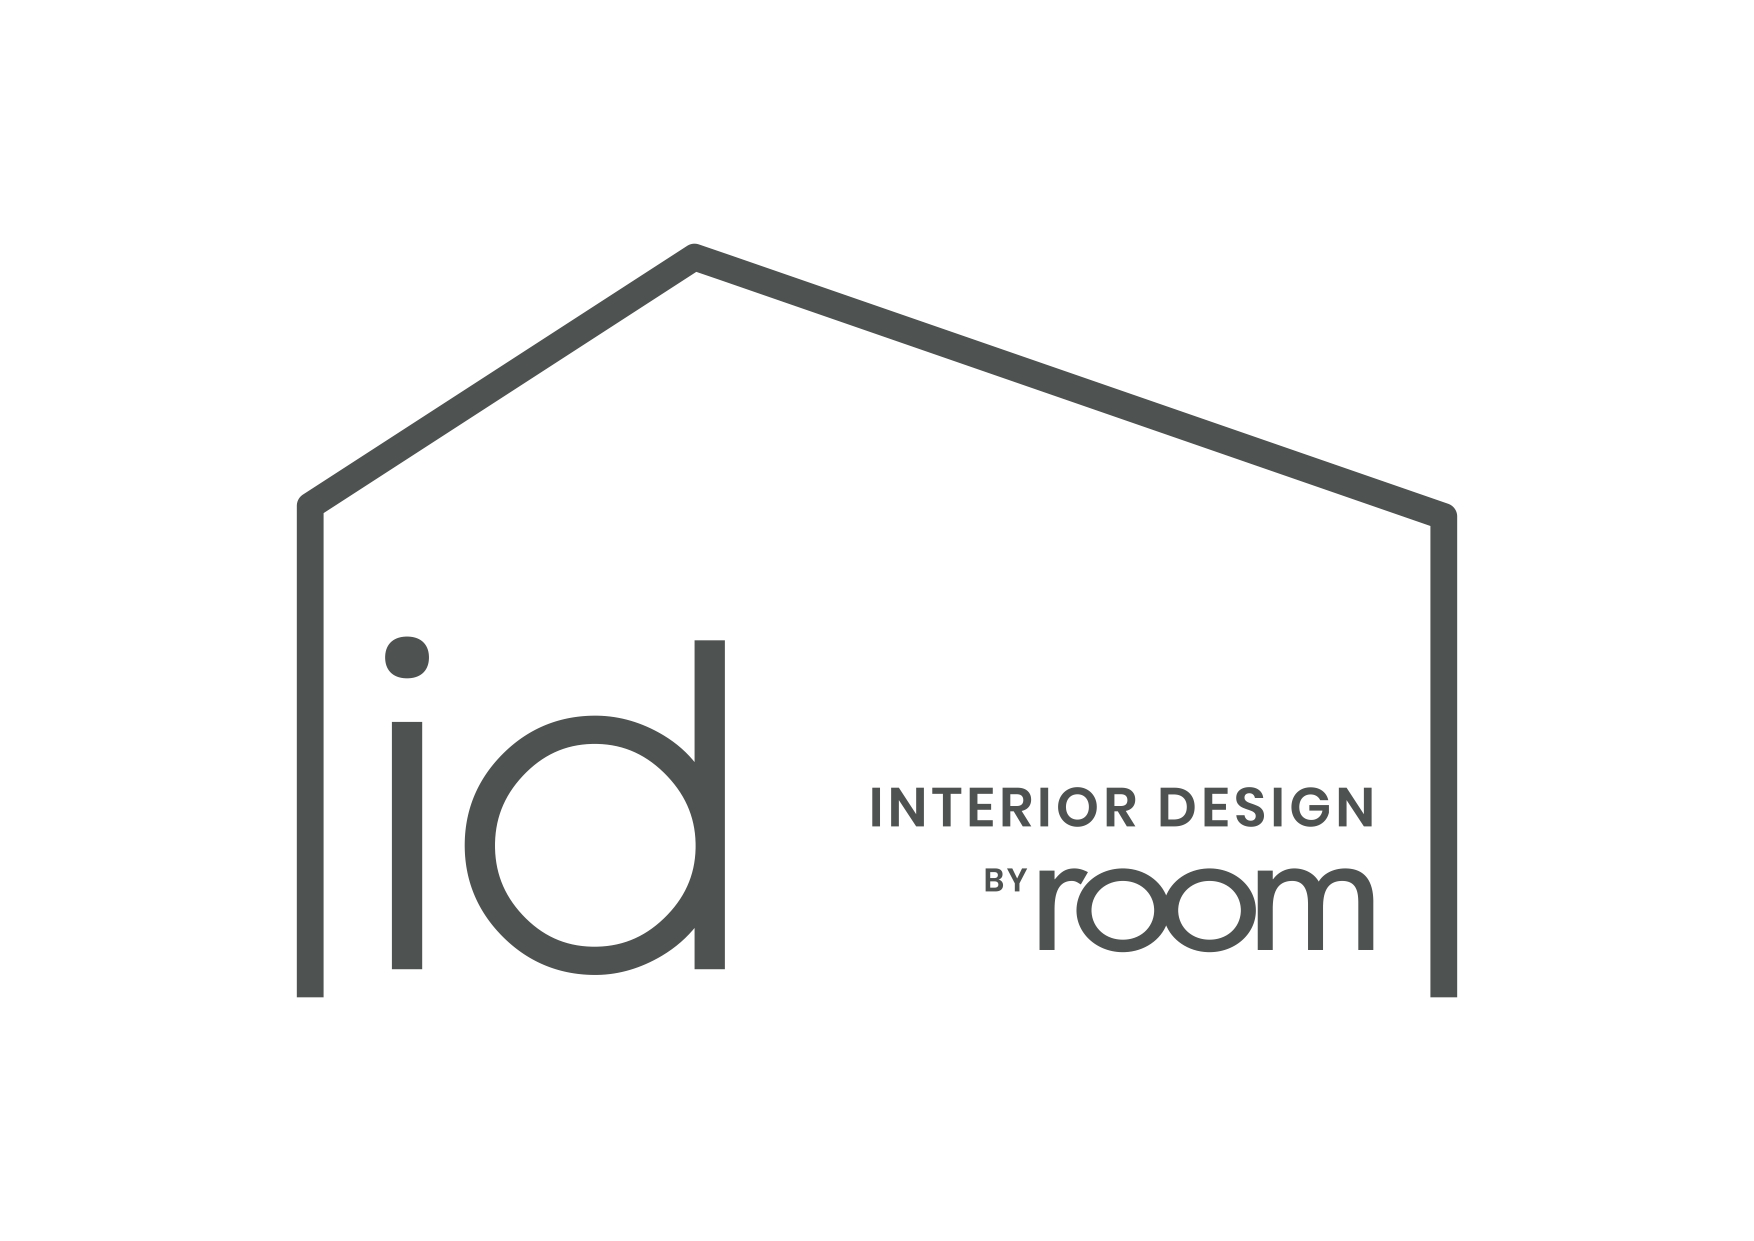 ID by room